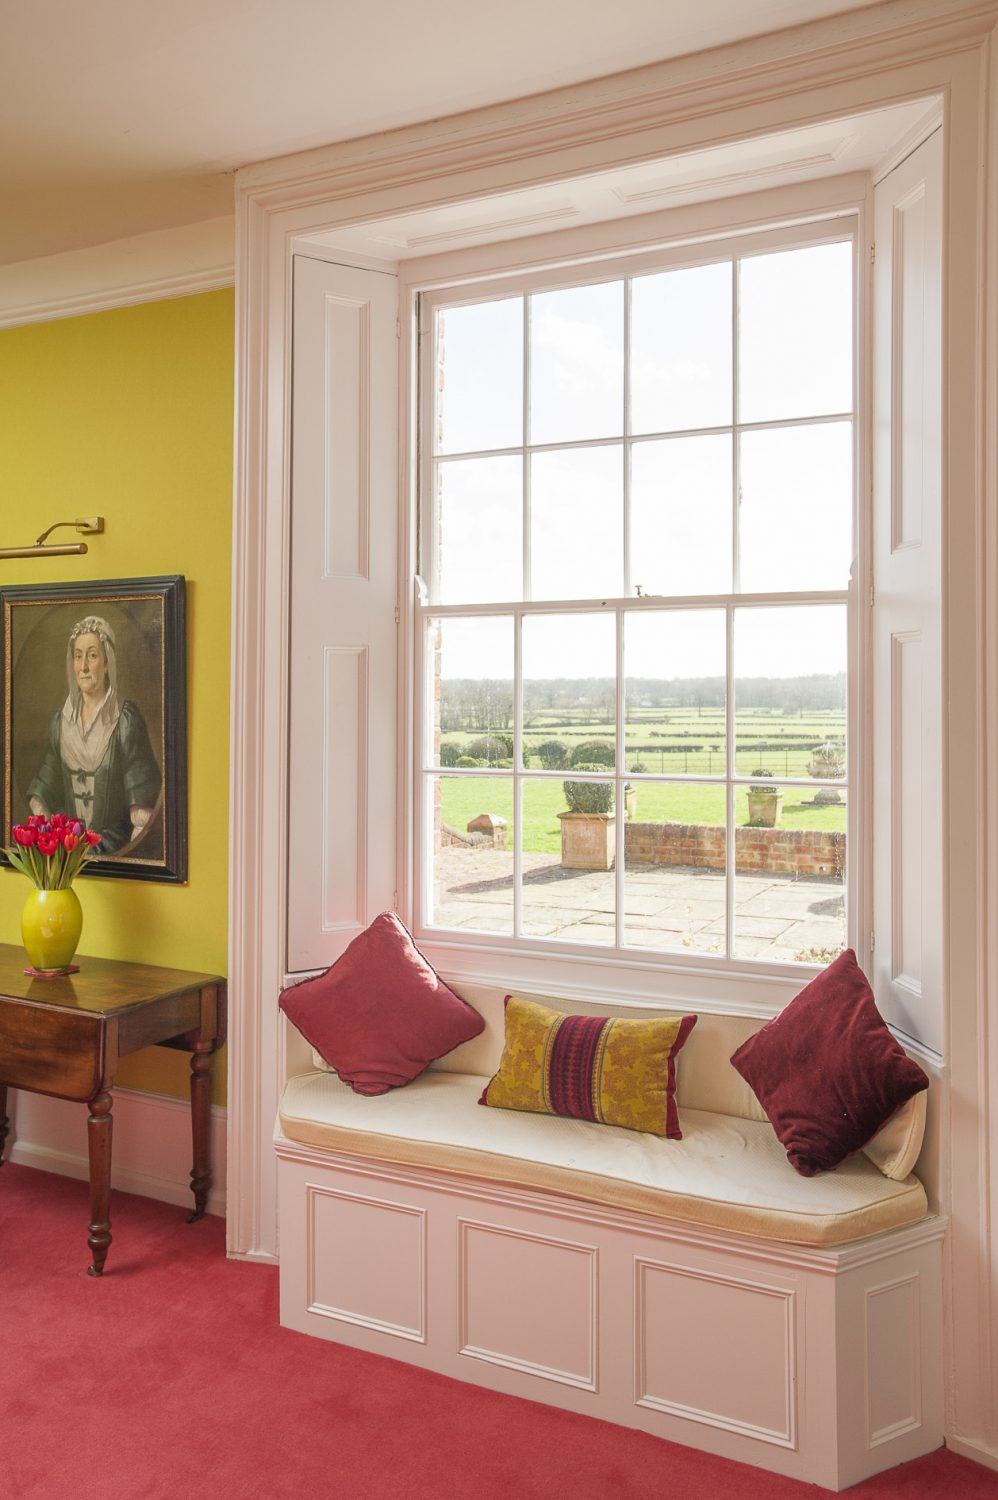 The window seat provides the ideal spot to enjoy beautiful views over rolling countryside